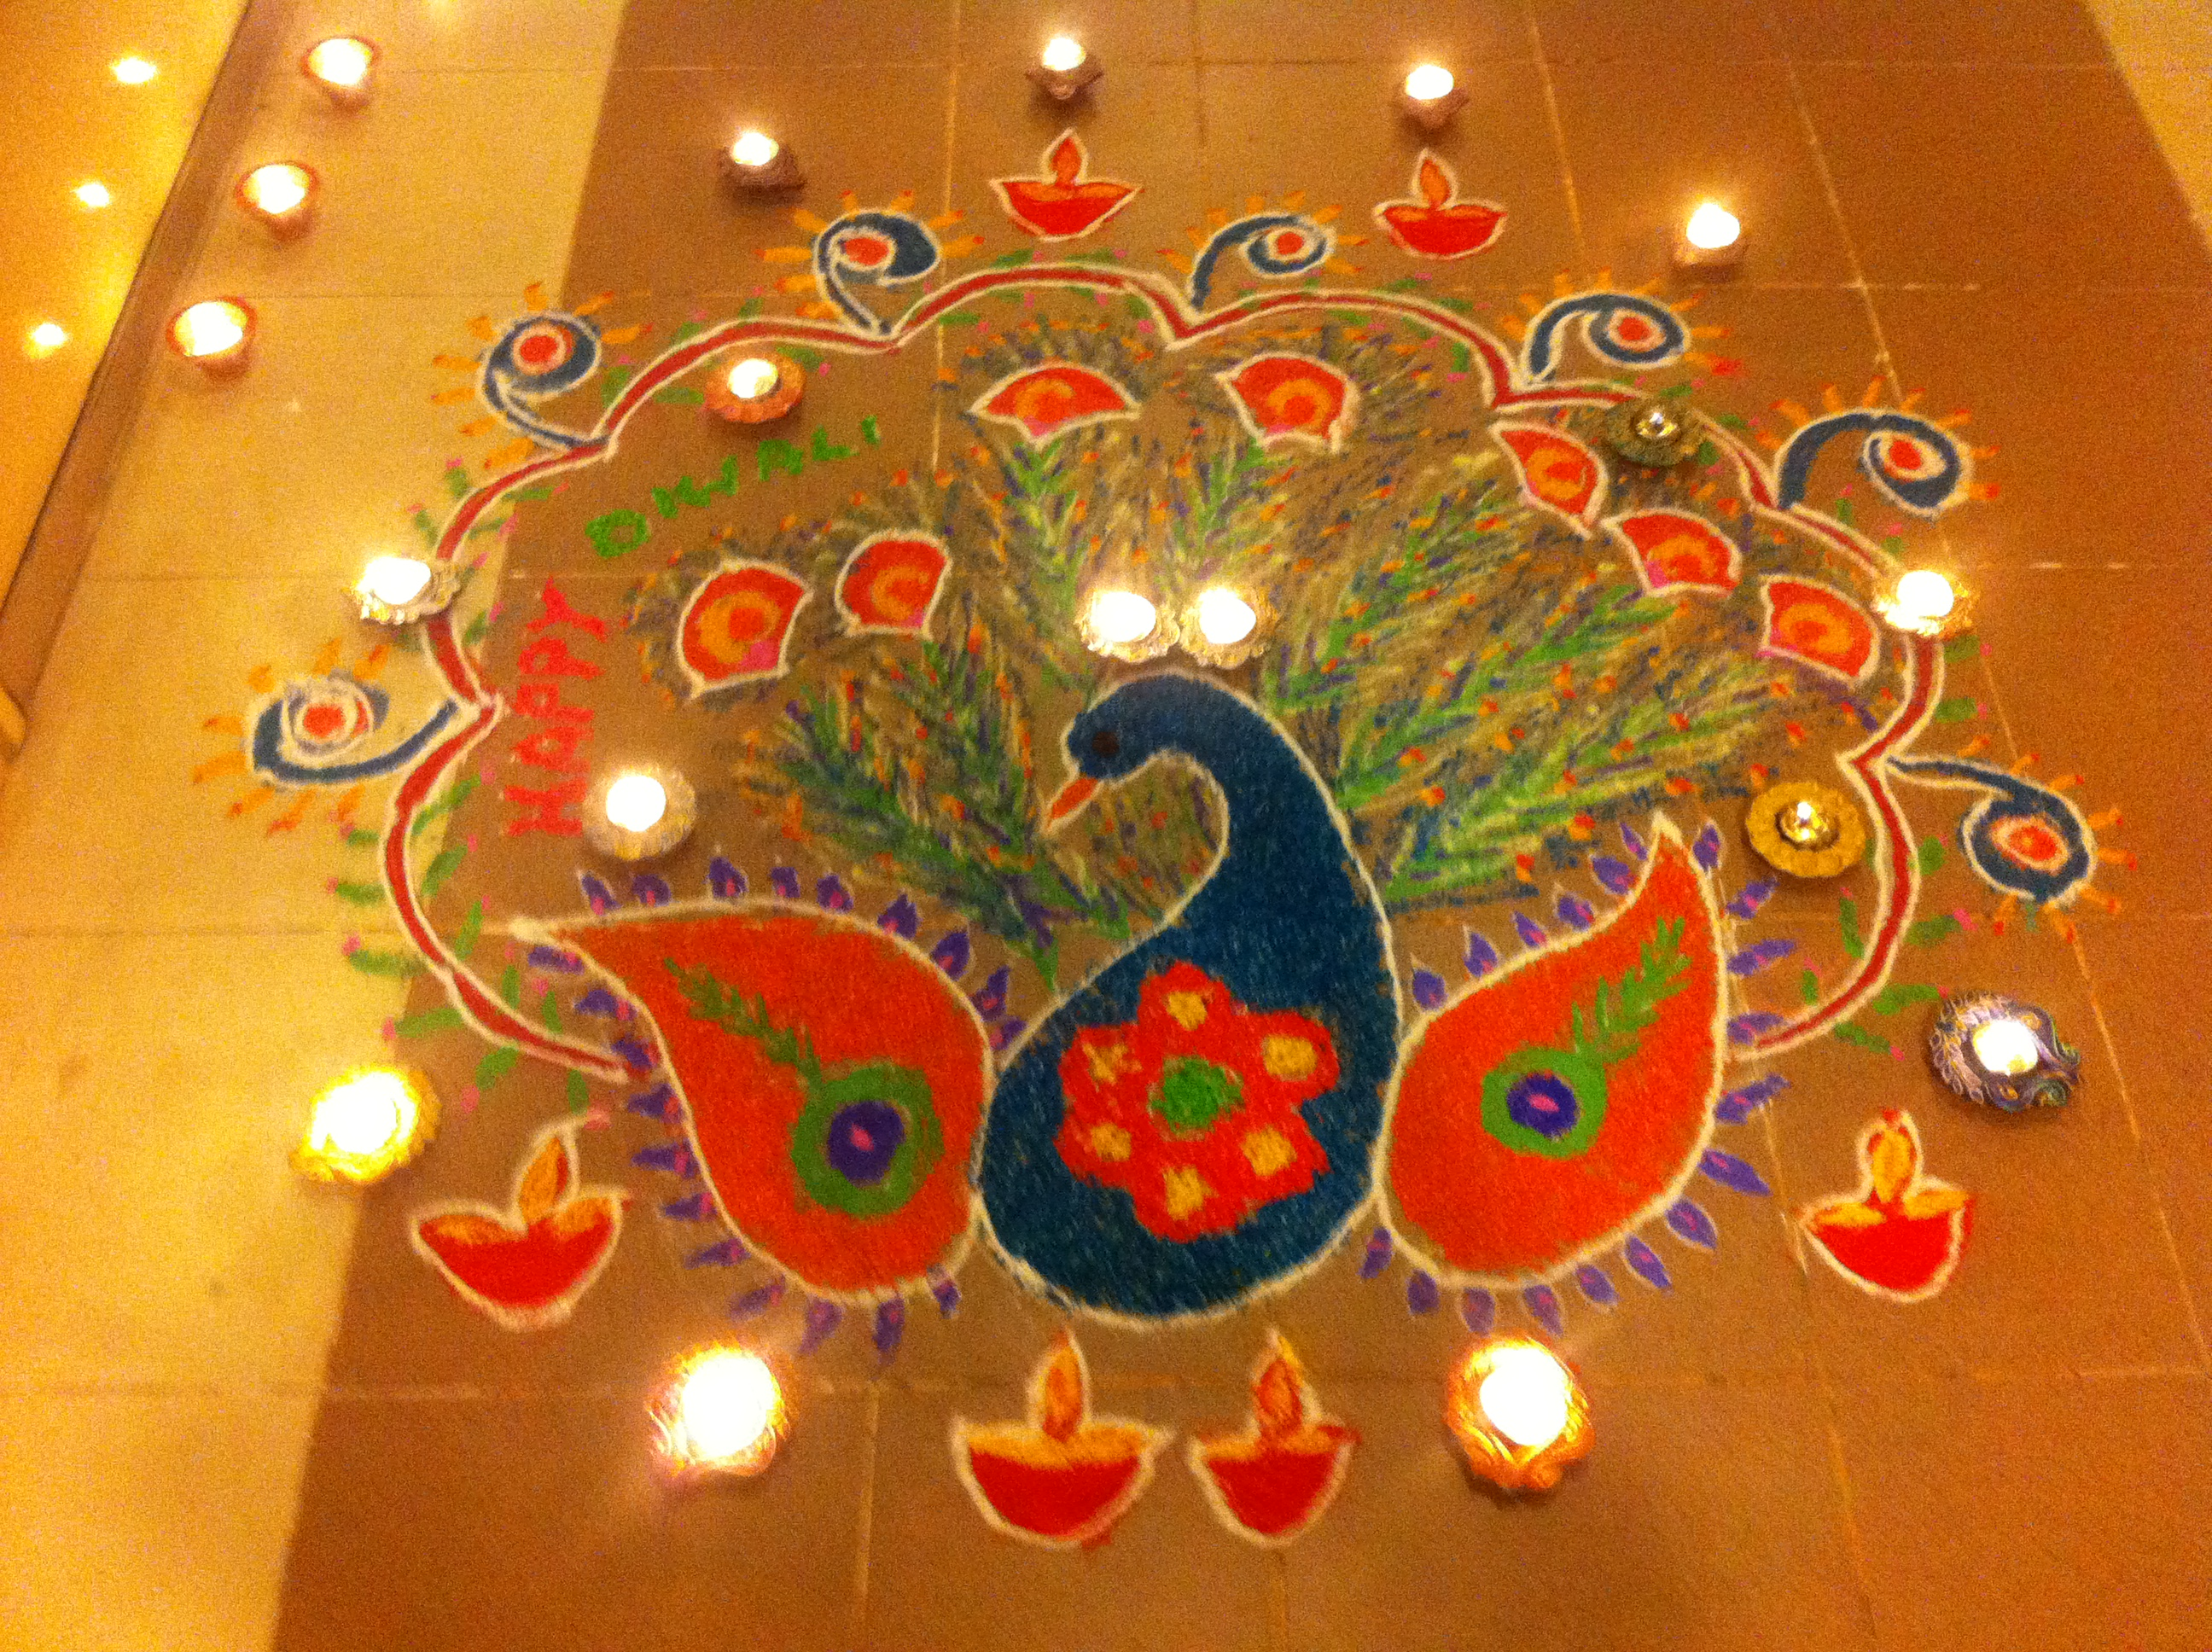 Diwali Lamp Designs Diwali Festival Creative Rangoli Designs Global